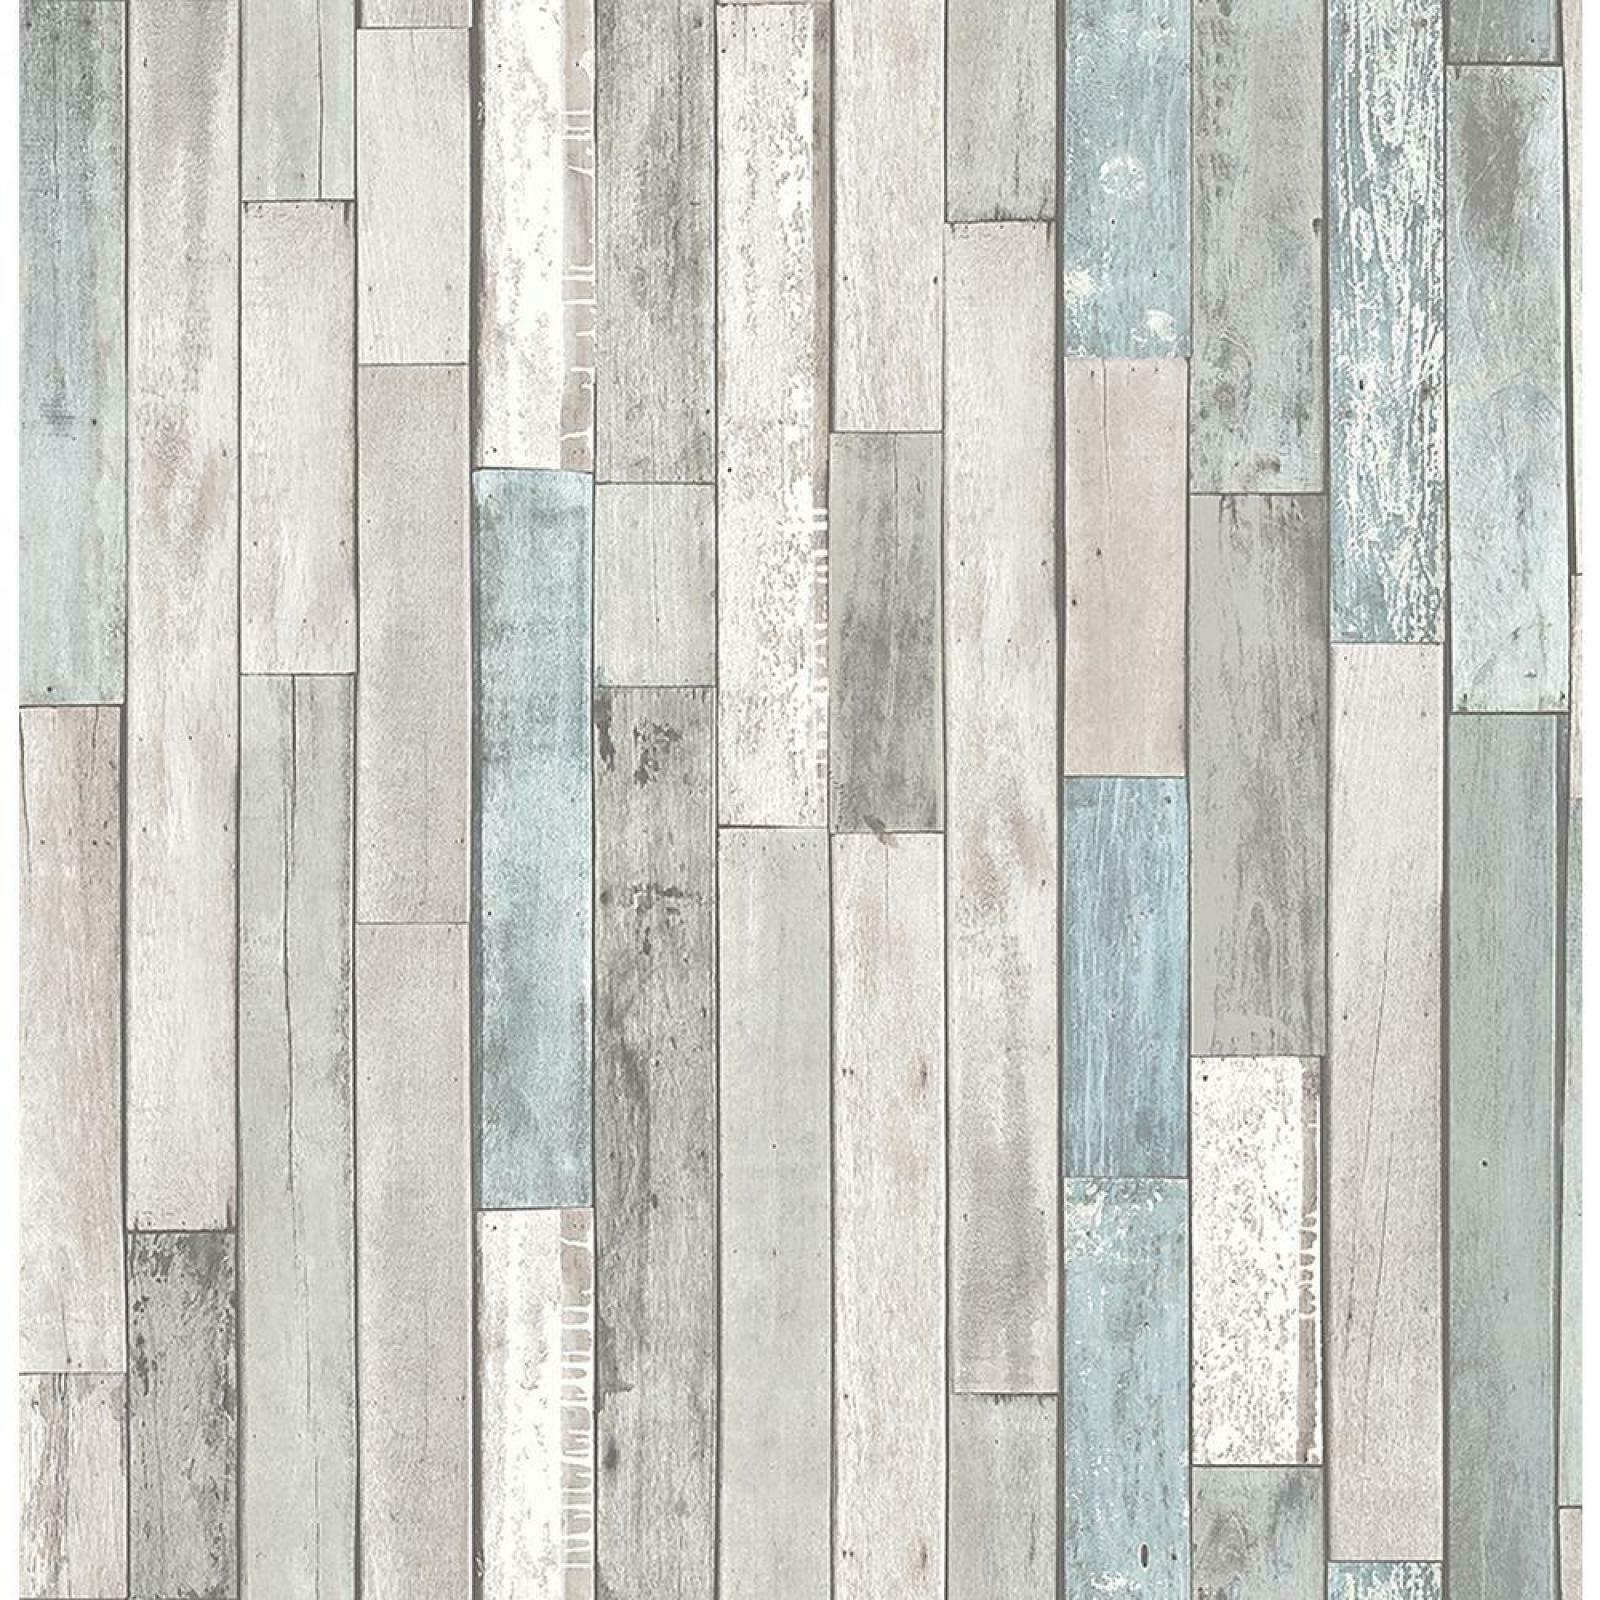 Details About Barn Board Grey Thin Plank Wallpaper Washable Strippable Woven Material Comfert